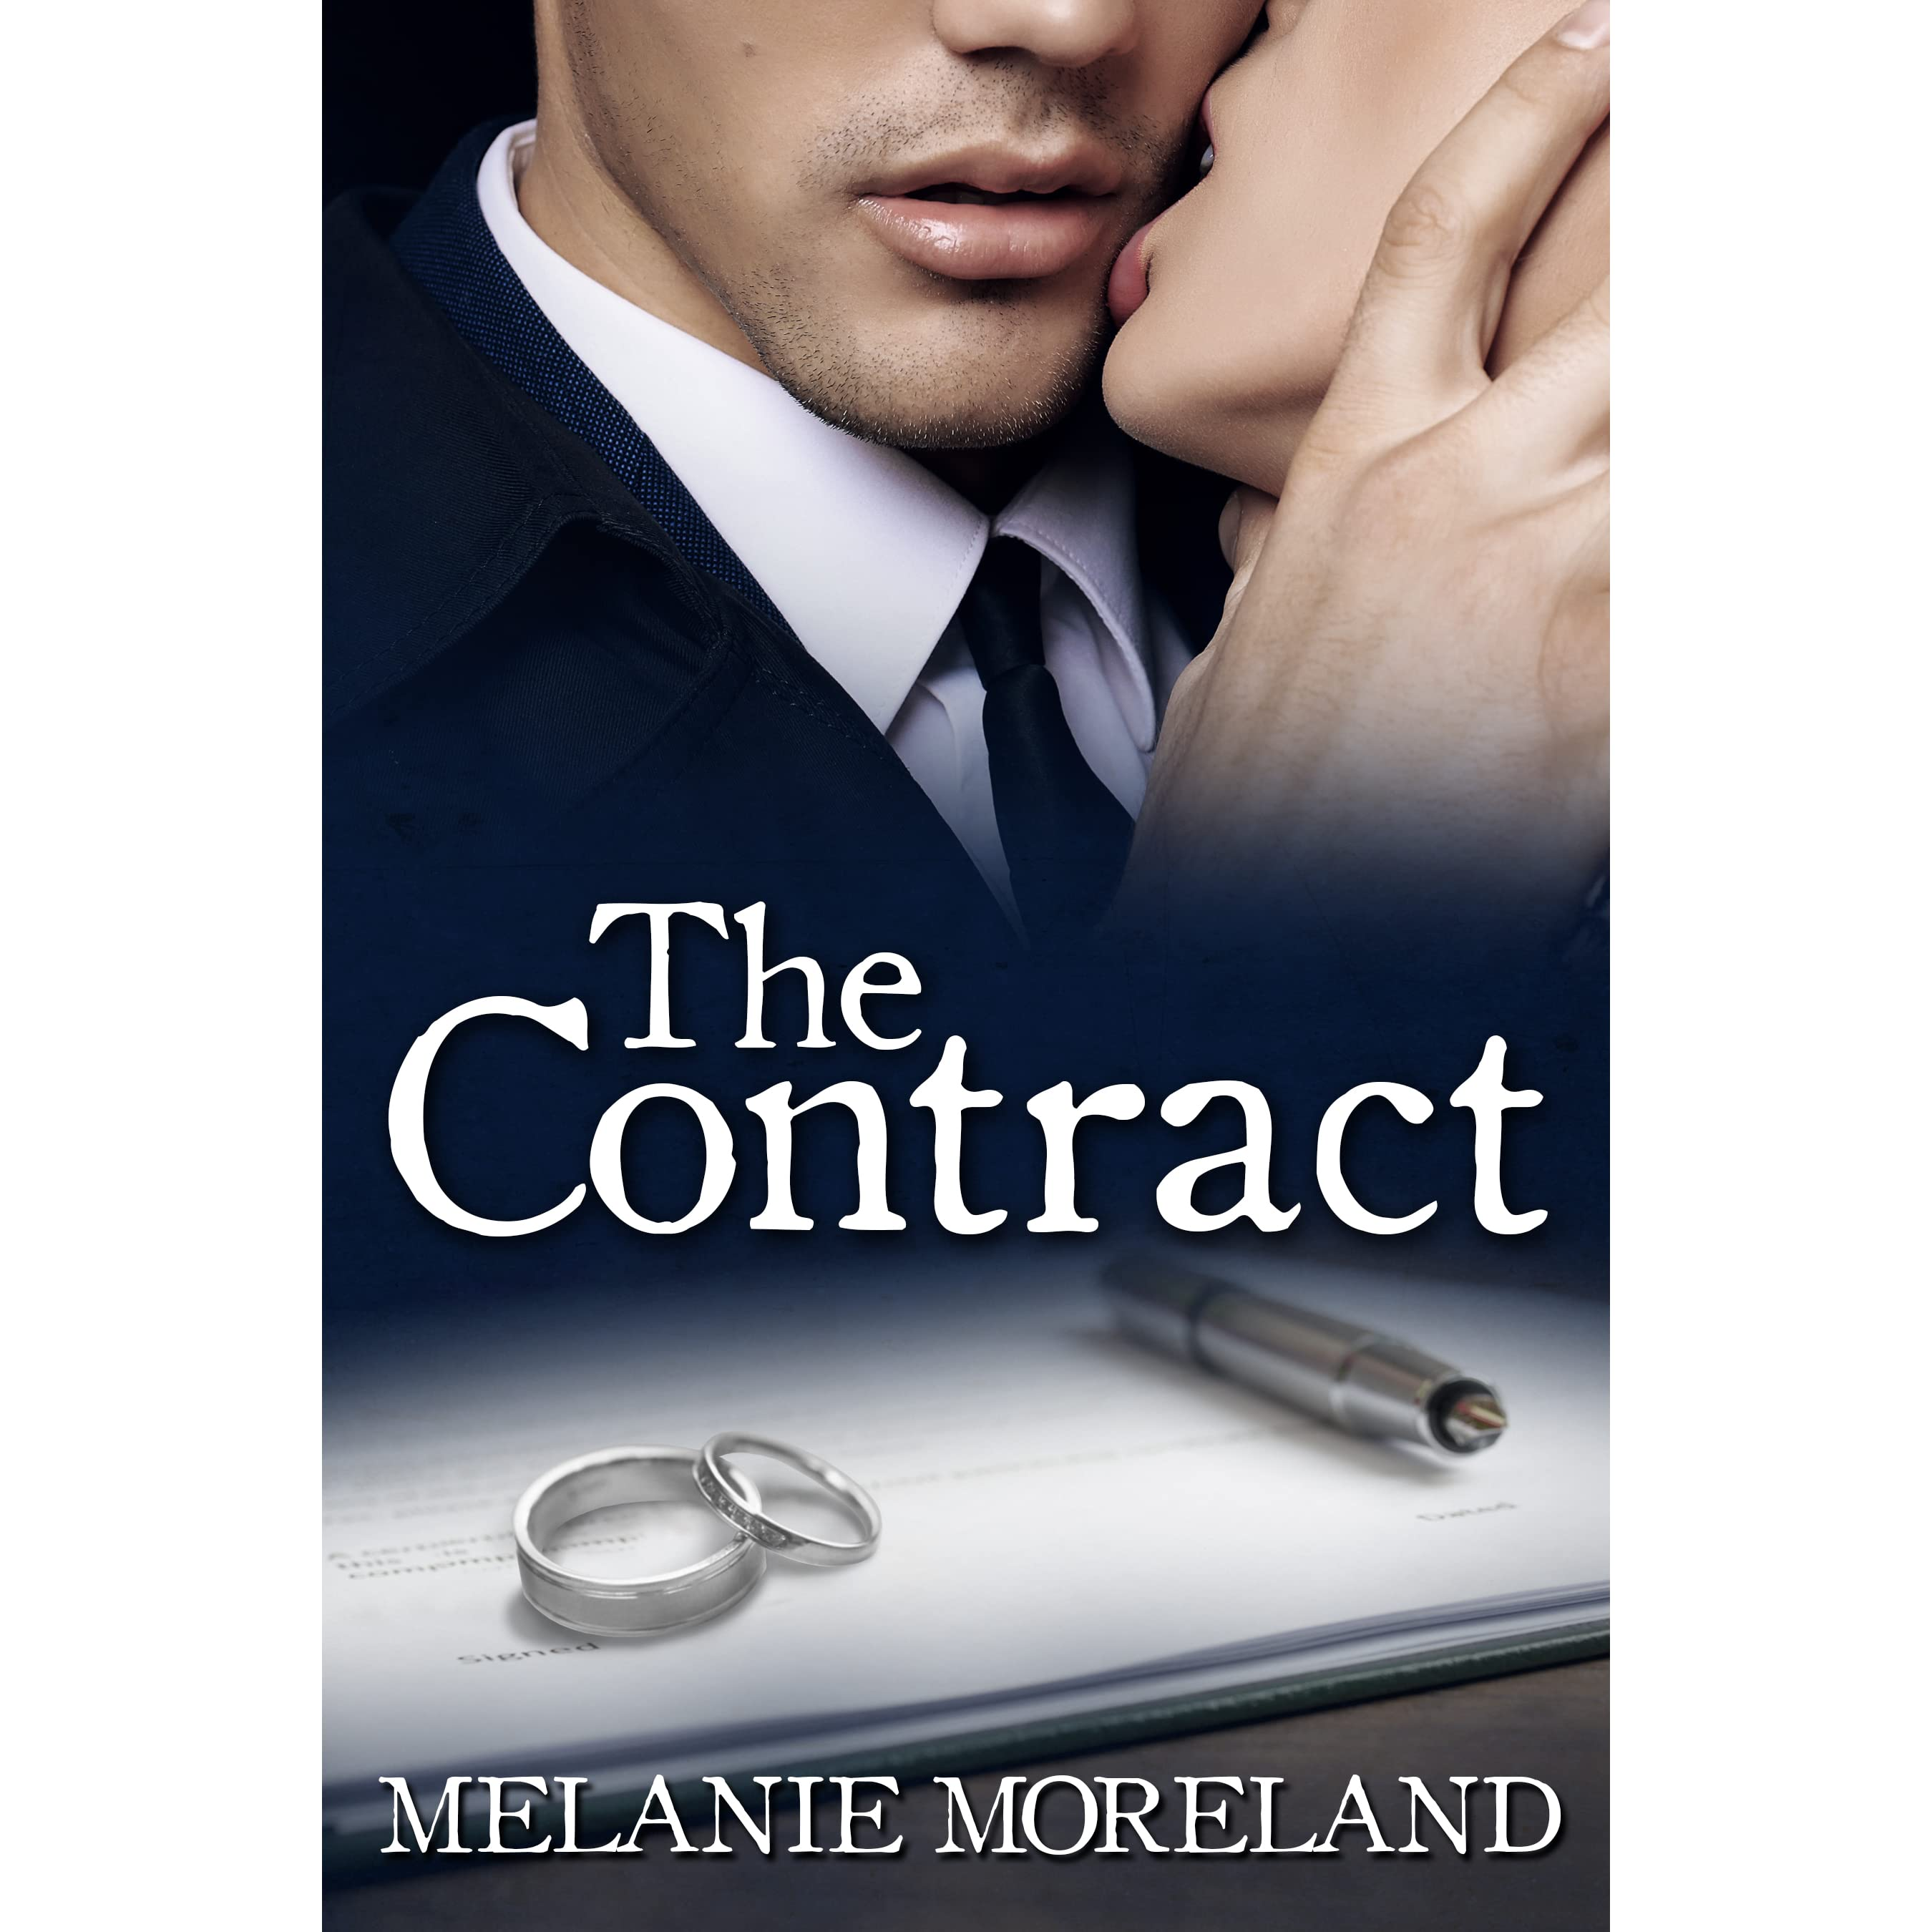 The Contract (The Contract, #1) by Melanie Moreland